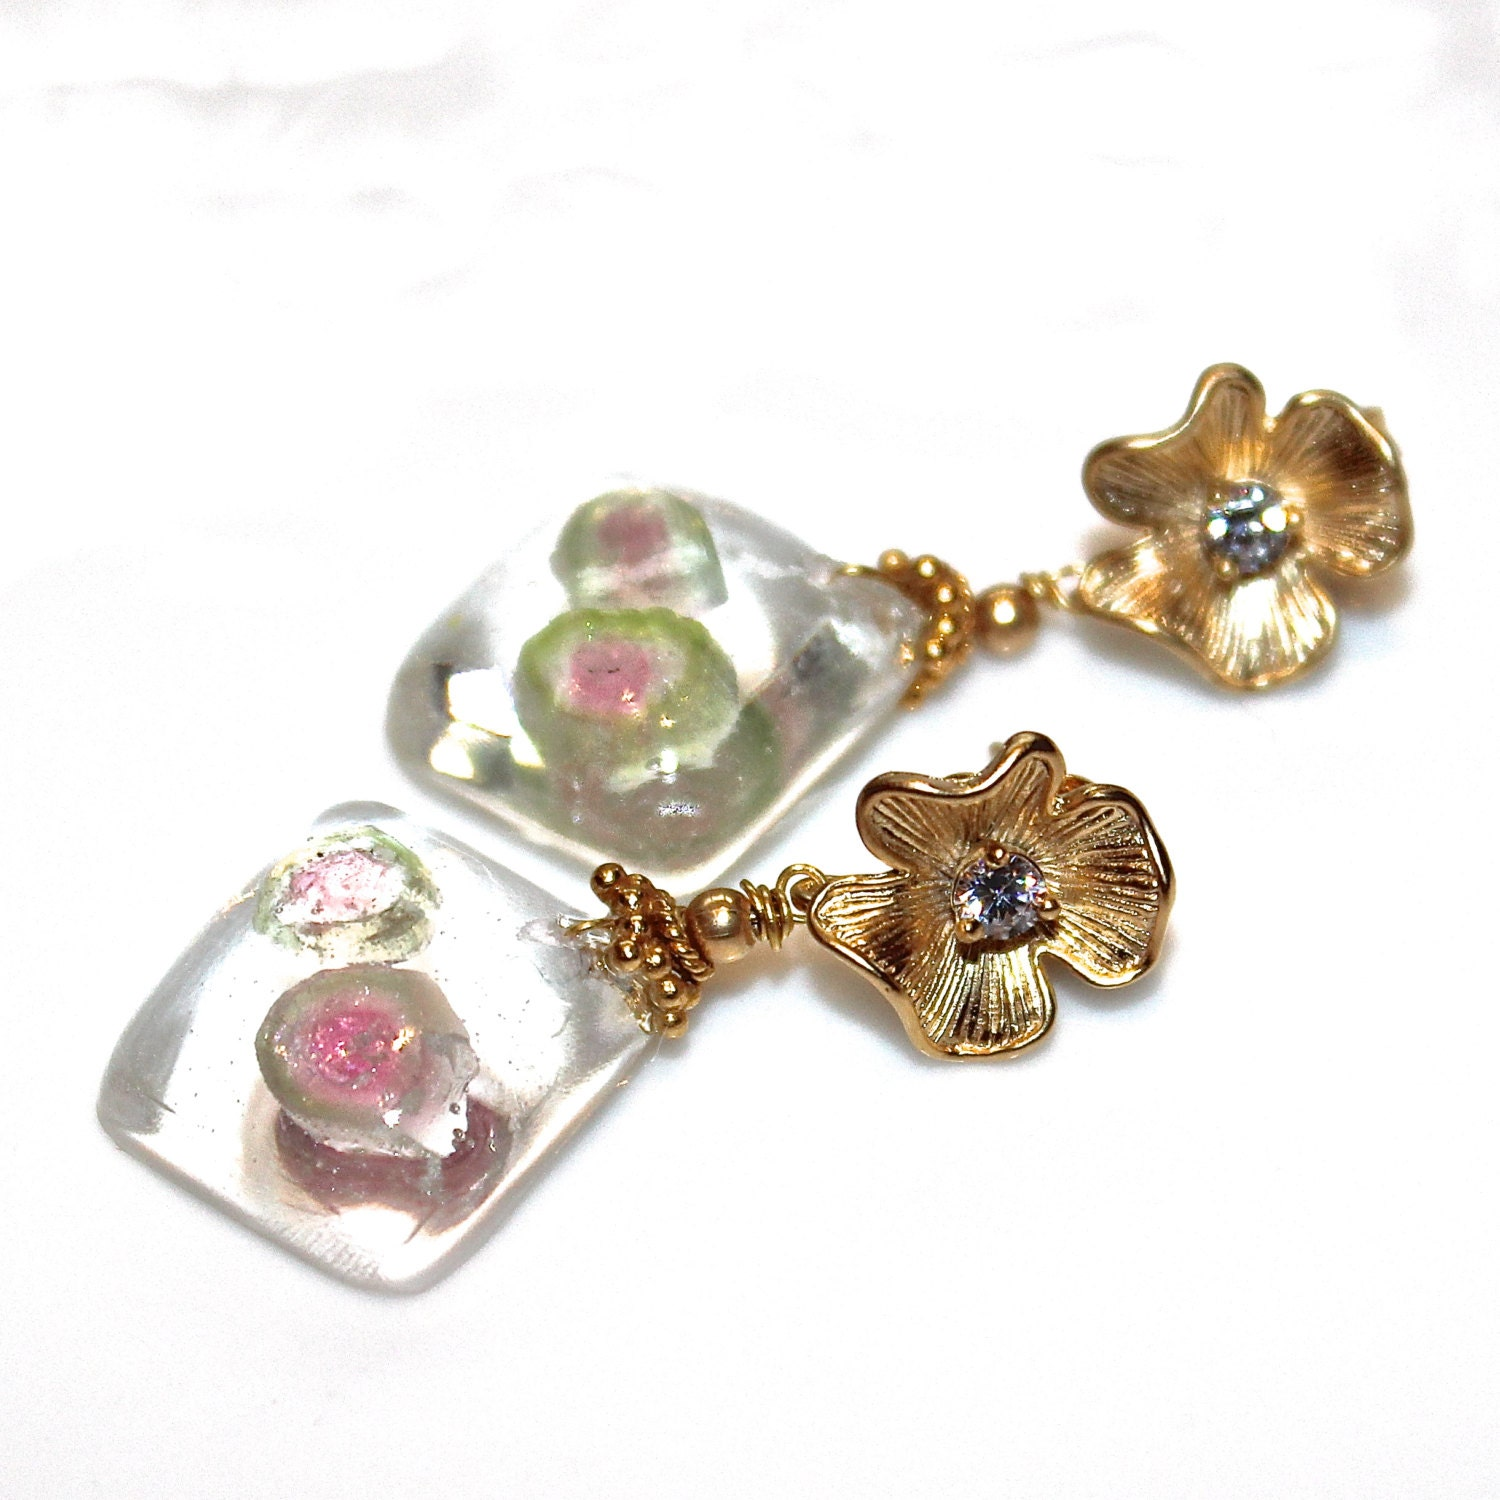 watermelon tourmaline slice earrings resin jewelry resin